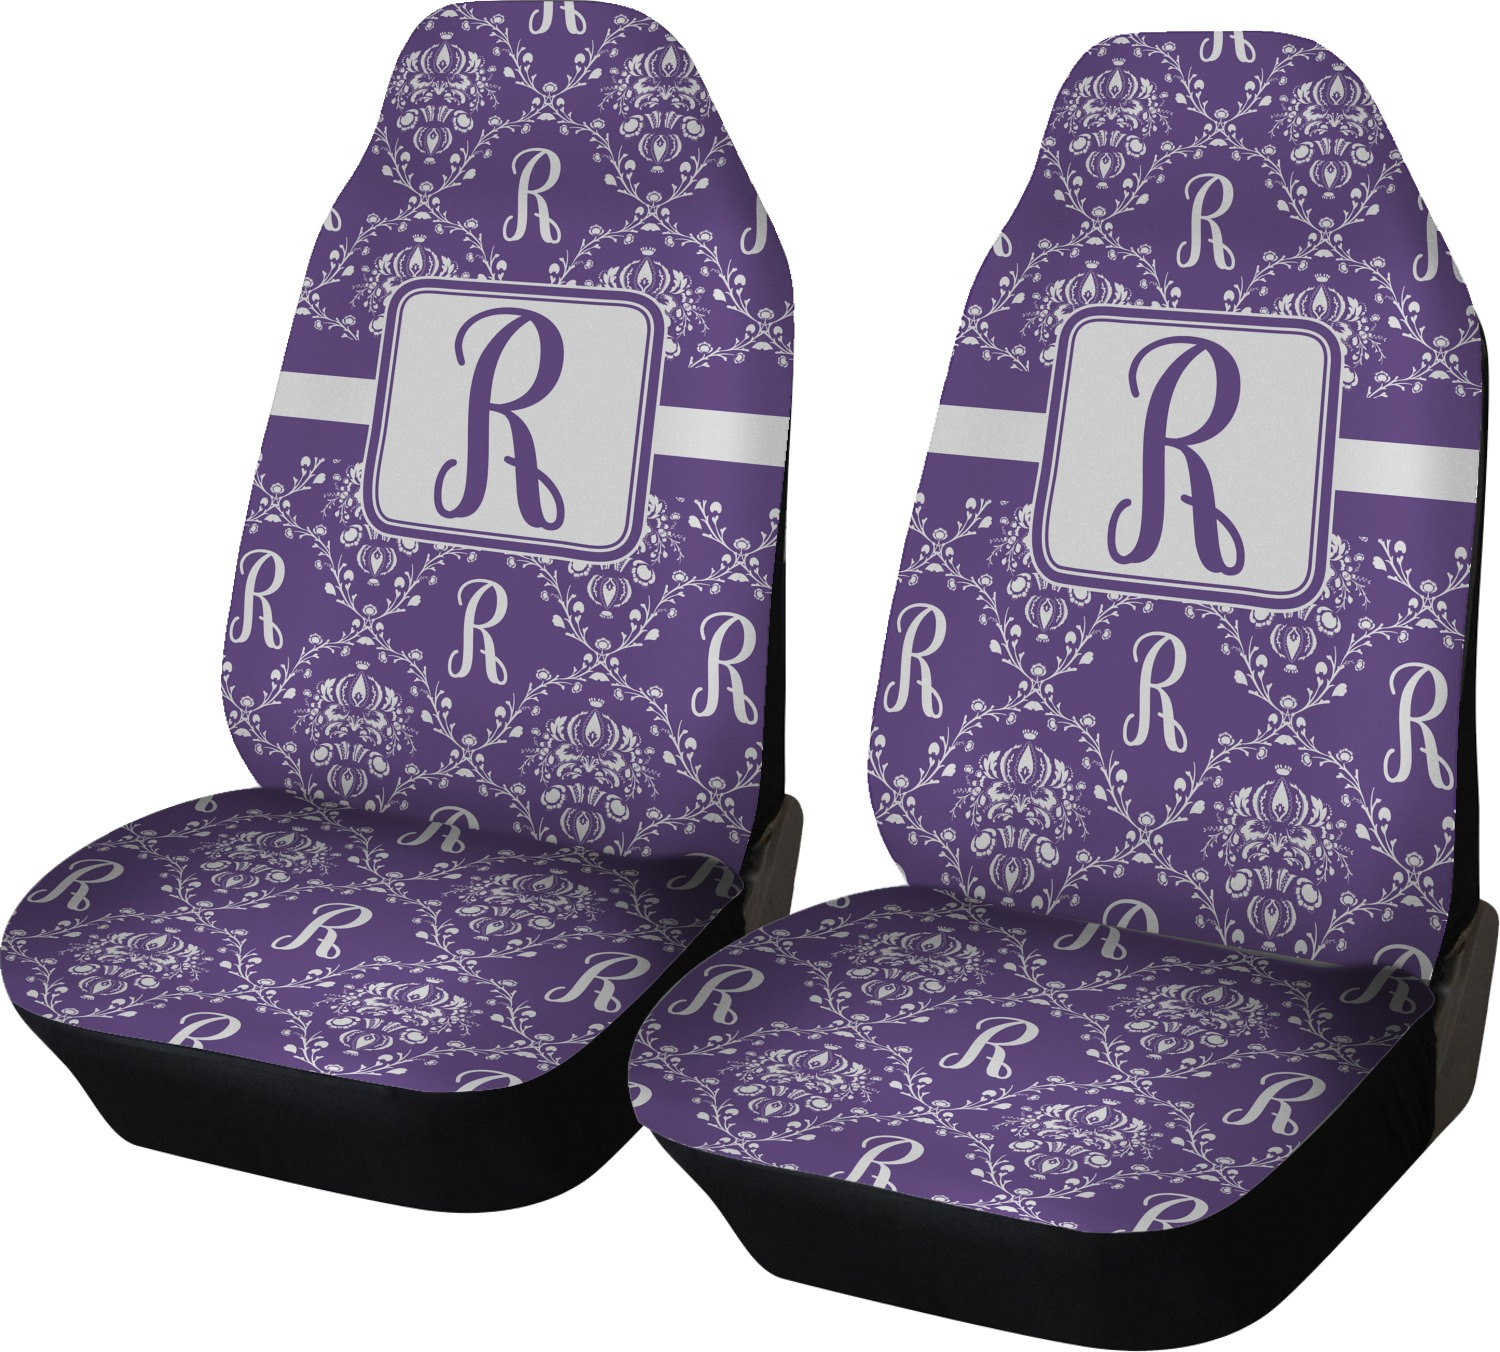 Initial Damask Car Seat Covers Set Of Two Personalized